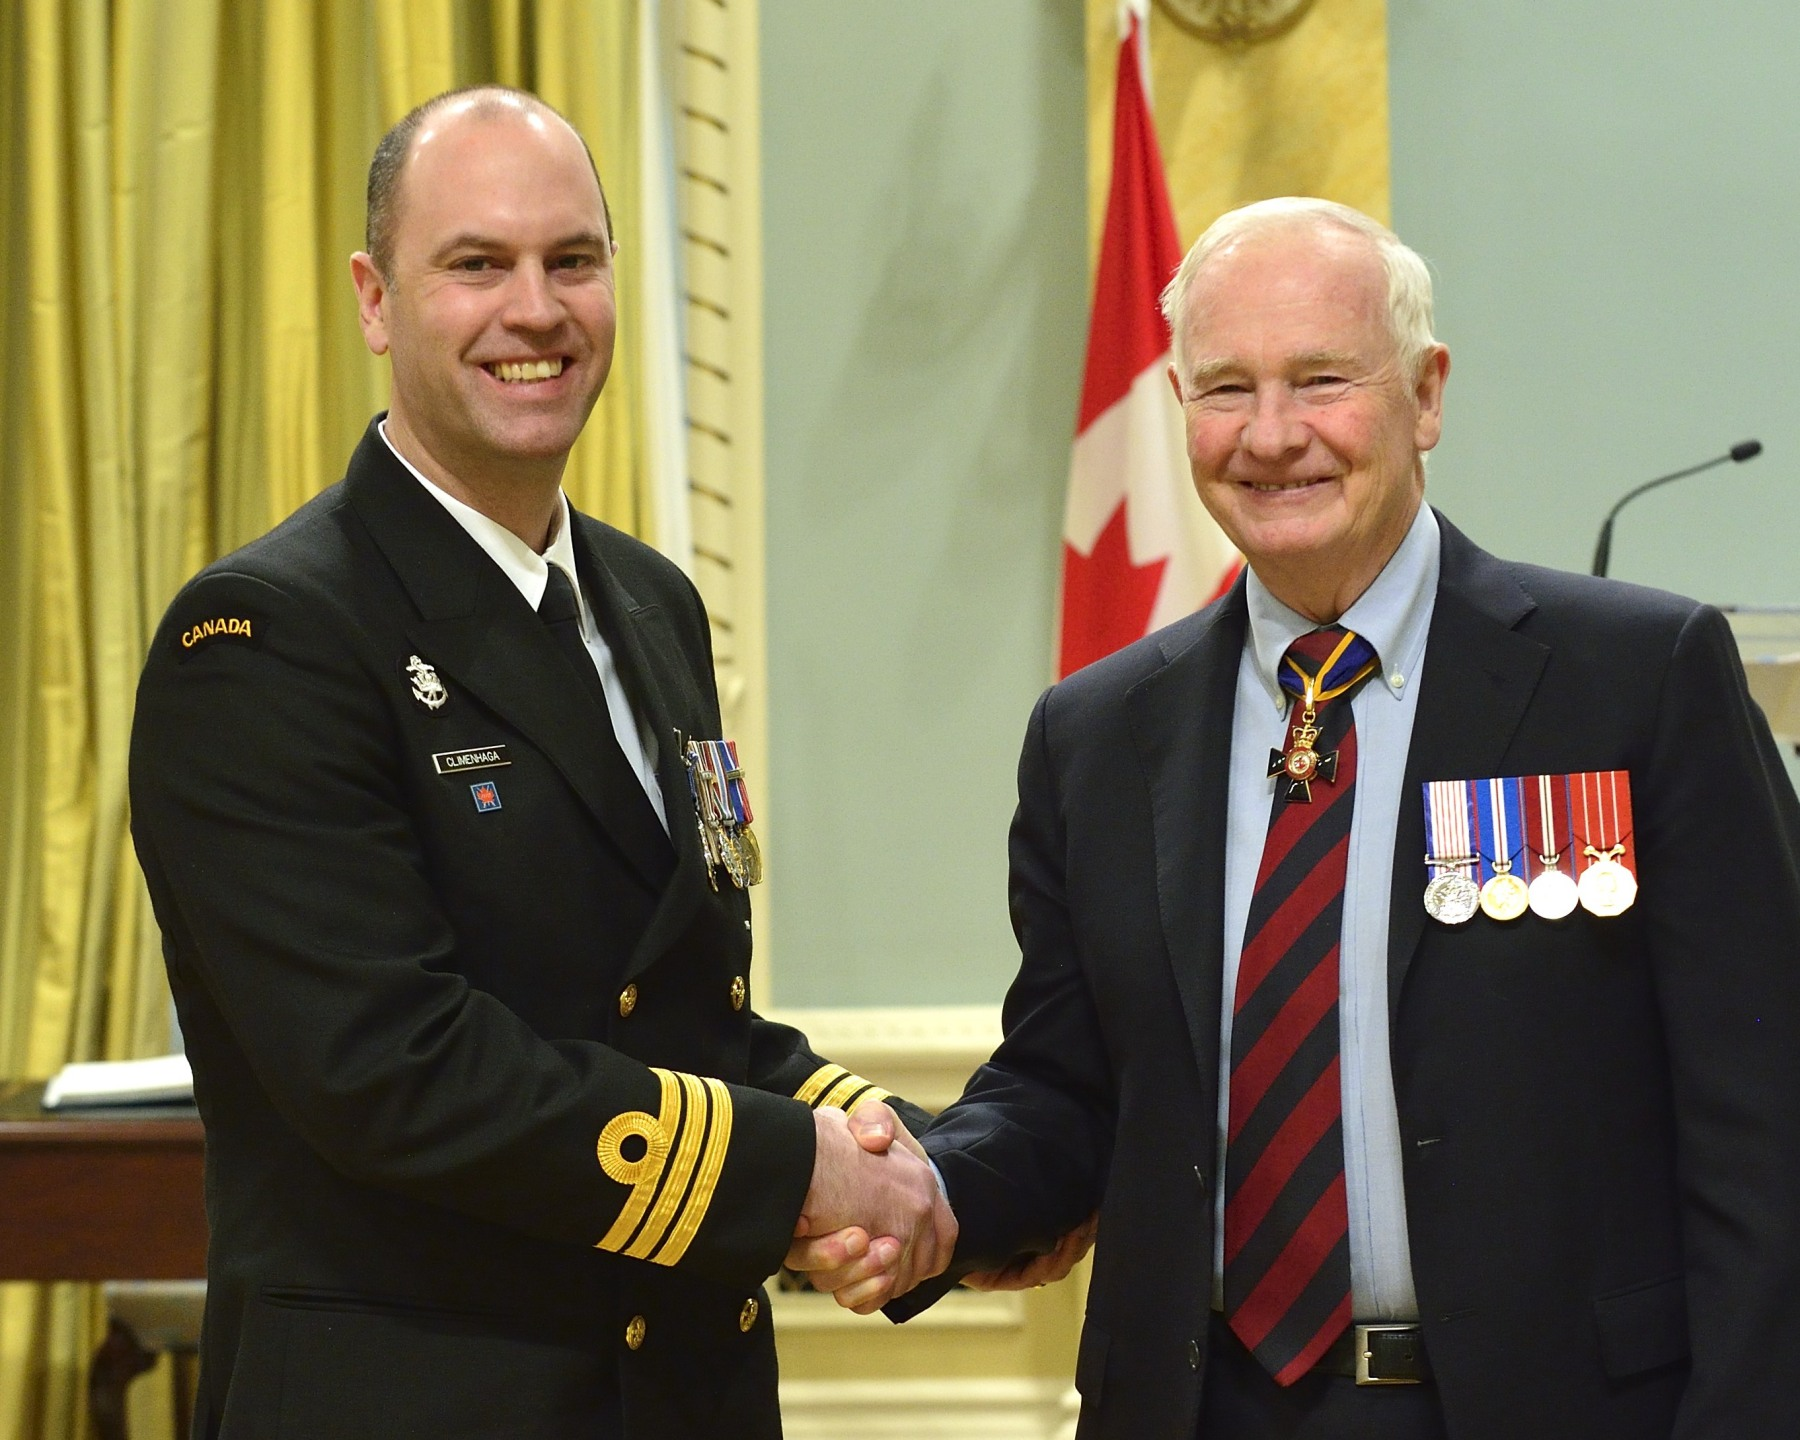 Commander Jeffrey Campbell Climenhaga, M.S.M., C.D. (Kindersley, Saskatchewan) received the Meritorious Service Medal. While deployed to Afghanistan from March to November 2012, Commander Climenhaga delivered an exceptional performance as the J7 within the Deputy Commander-Special Operations Forces organization, and as the senior Canadian at Camp Eggers. He planned, coordinated and executed equipment acquisitions, as well as oversaw the building of infrastructure that greatly enhanced the capabilities of the Afghan National Army, all while concurrently ensuring Canadian personnel were fully supported.